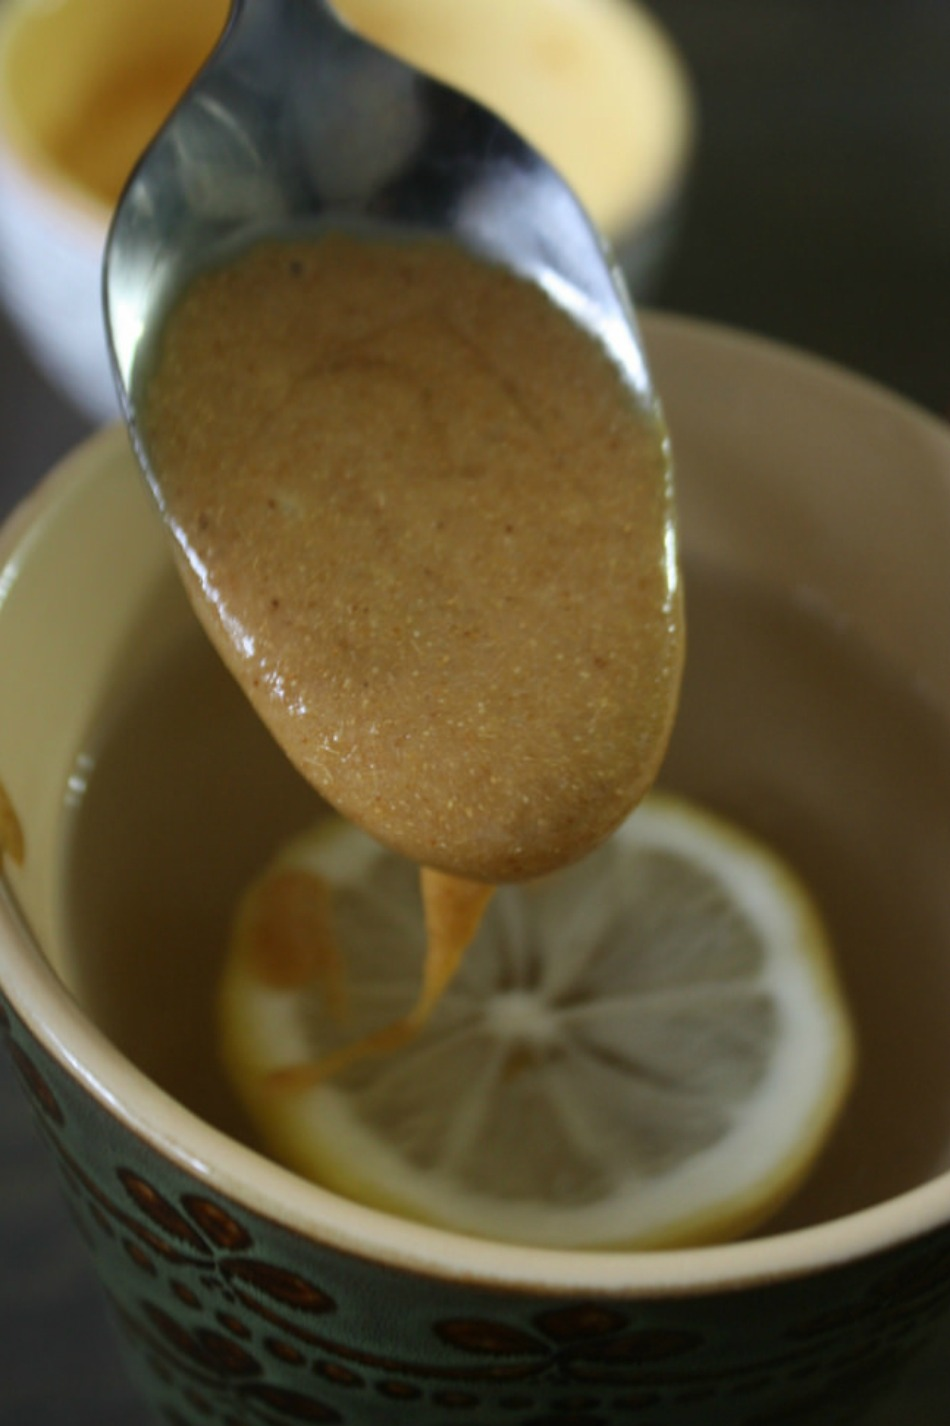 How To Use Lemon Ginger Tea To Nip A Cold In The Bud   Growing Up Herbal   Drink stimulating lemon ginger tea at the first sign of a cold to nip it in the bud!